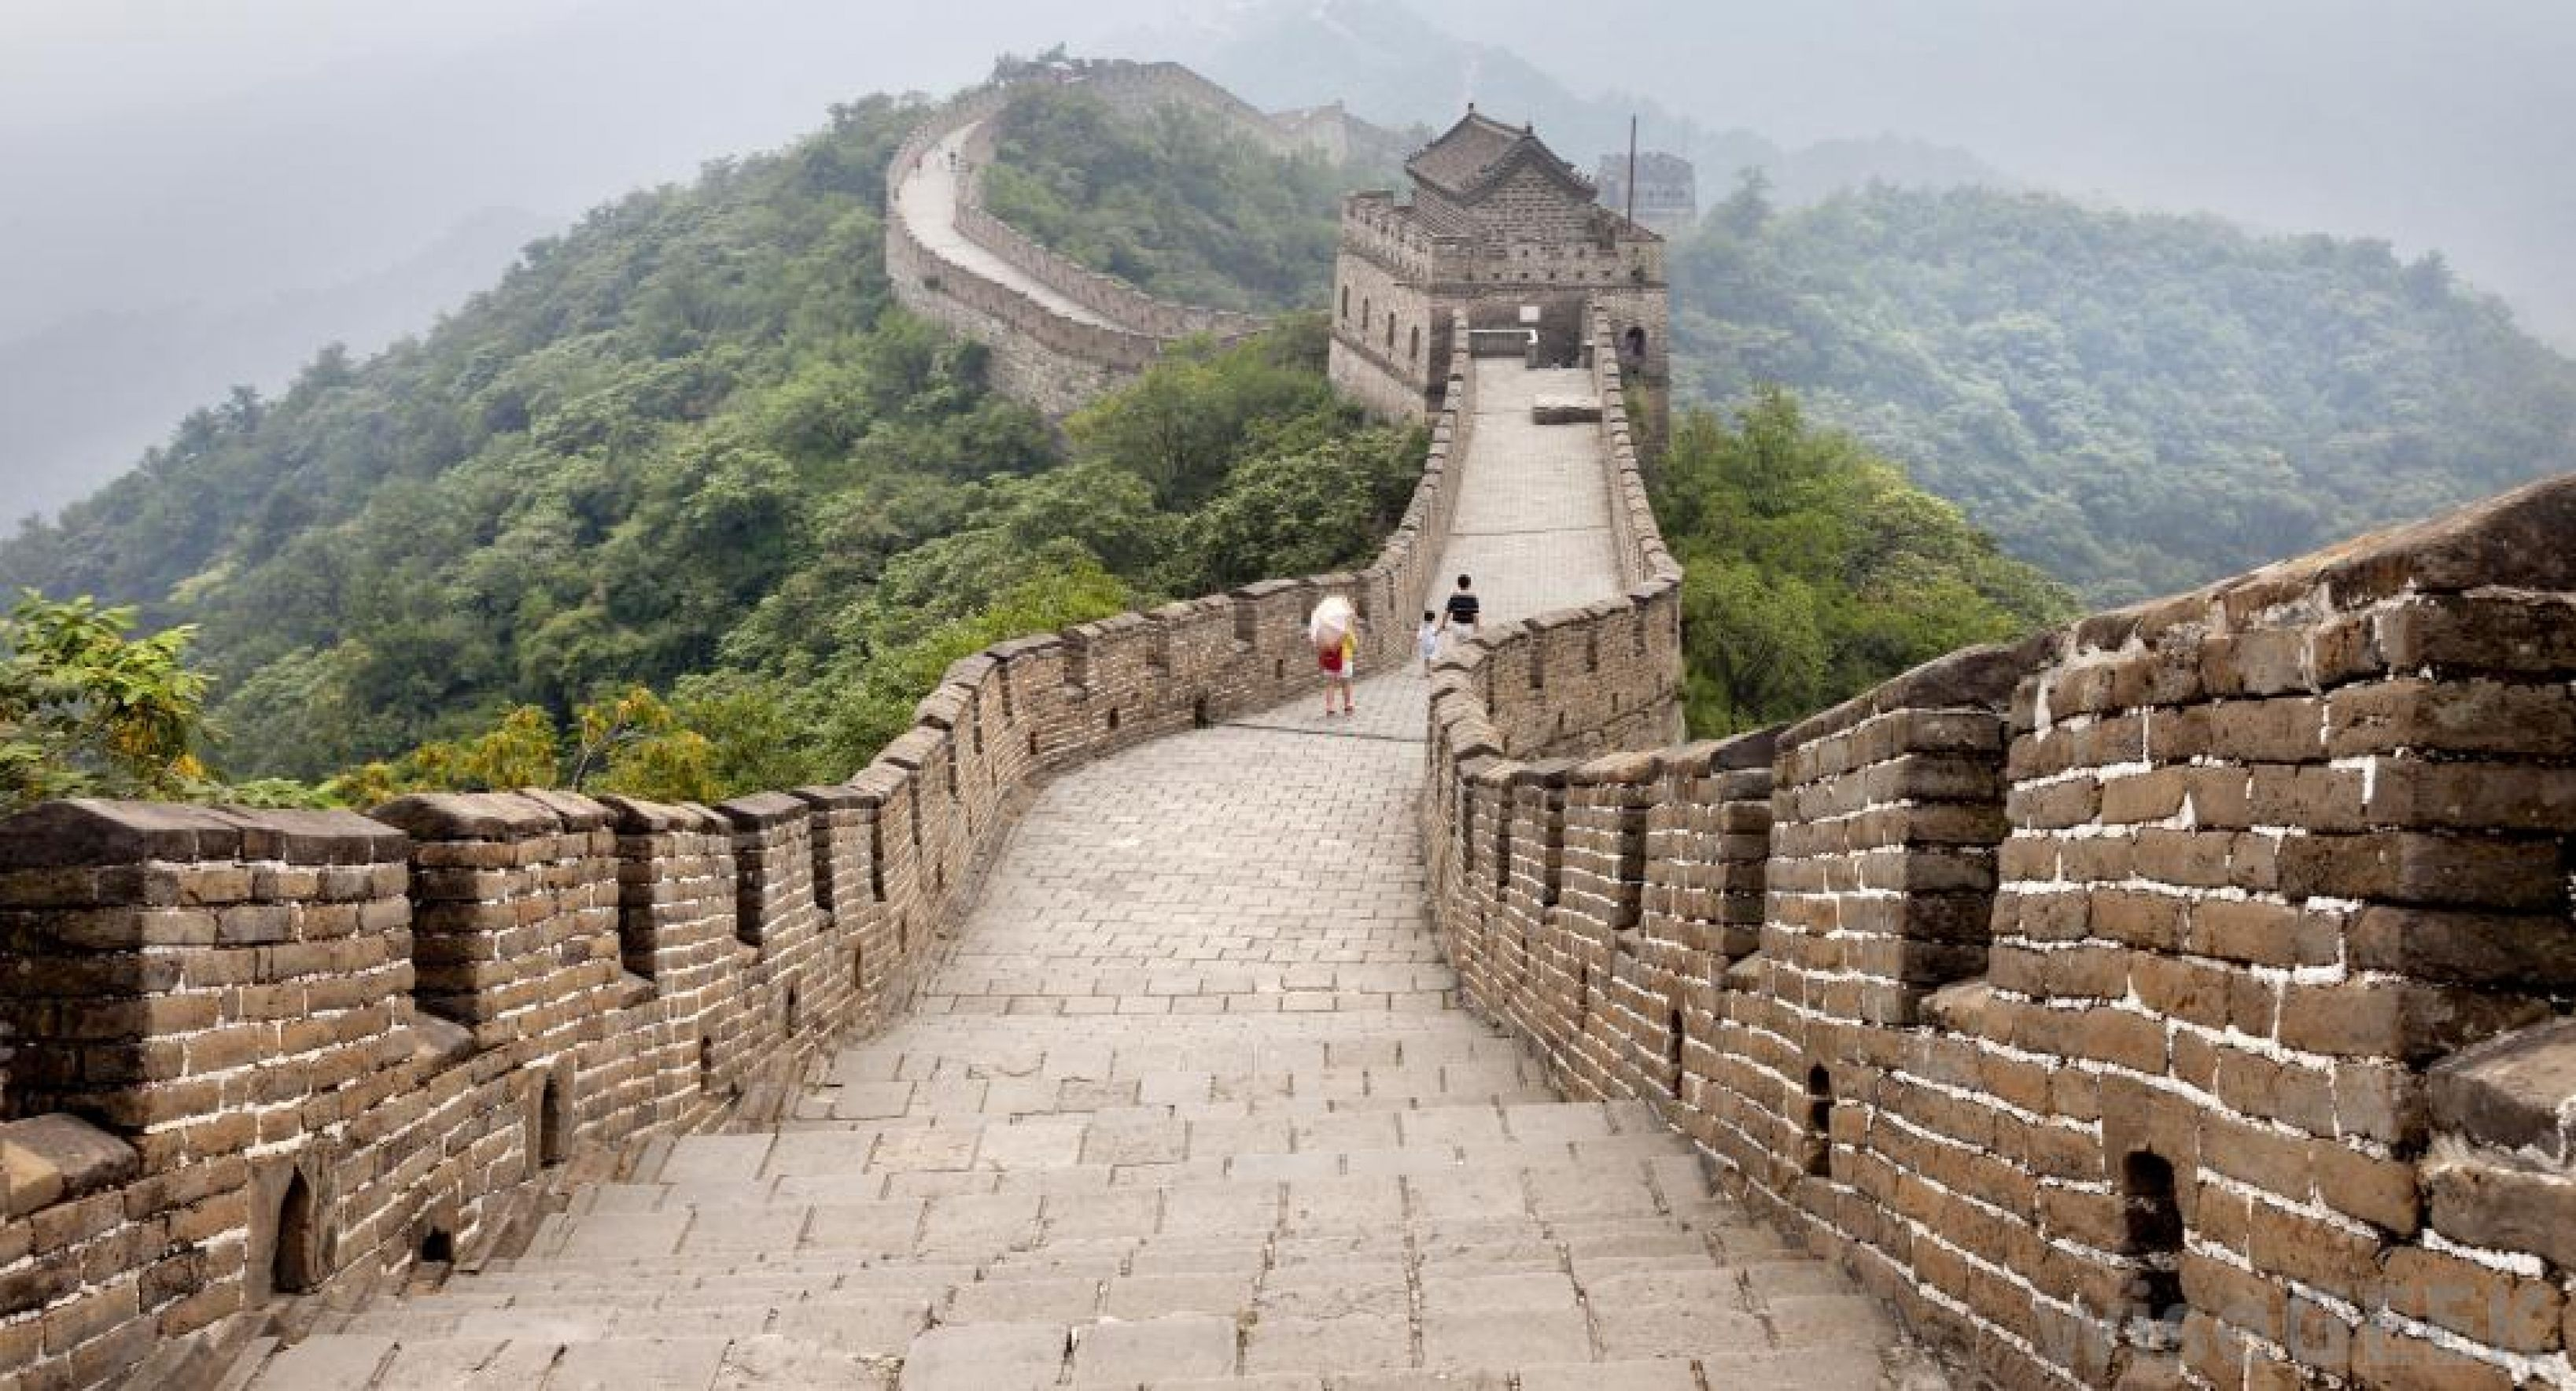 Cool The Great Wall Of China International Inside Also The Great Wall Of China